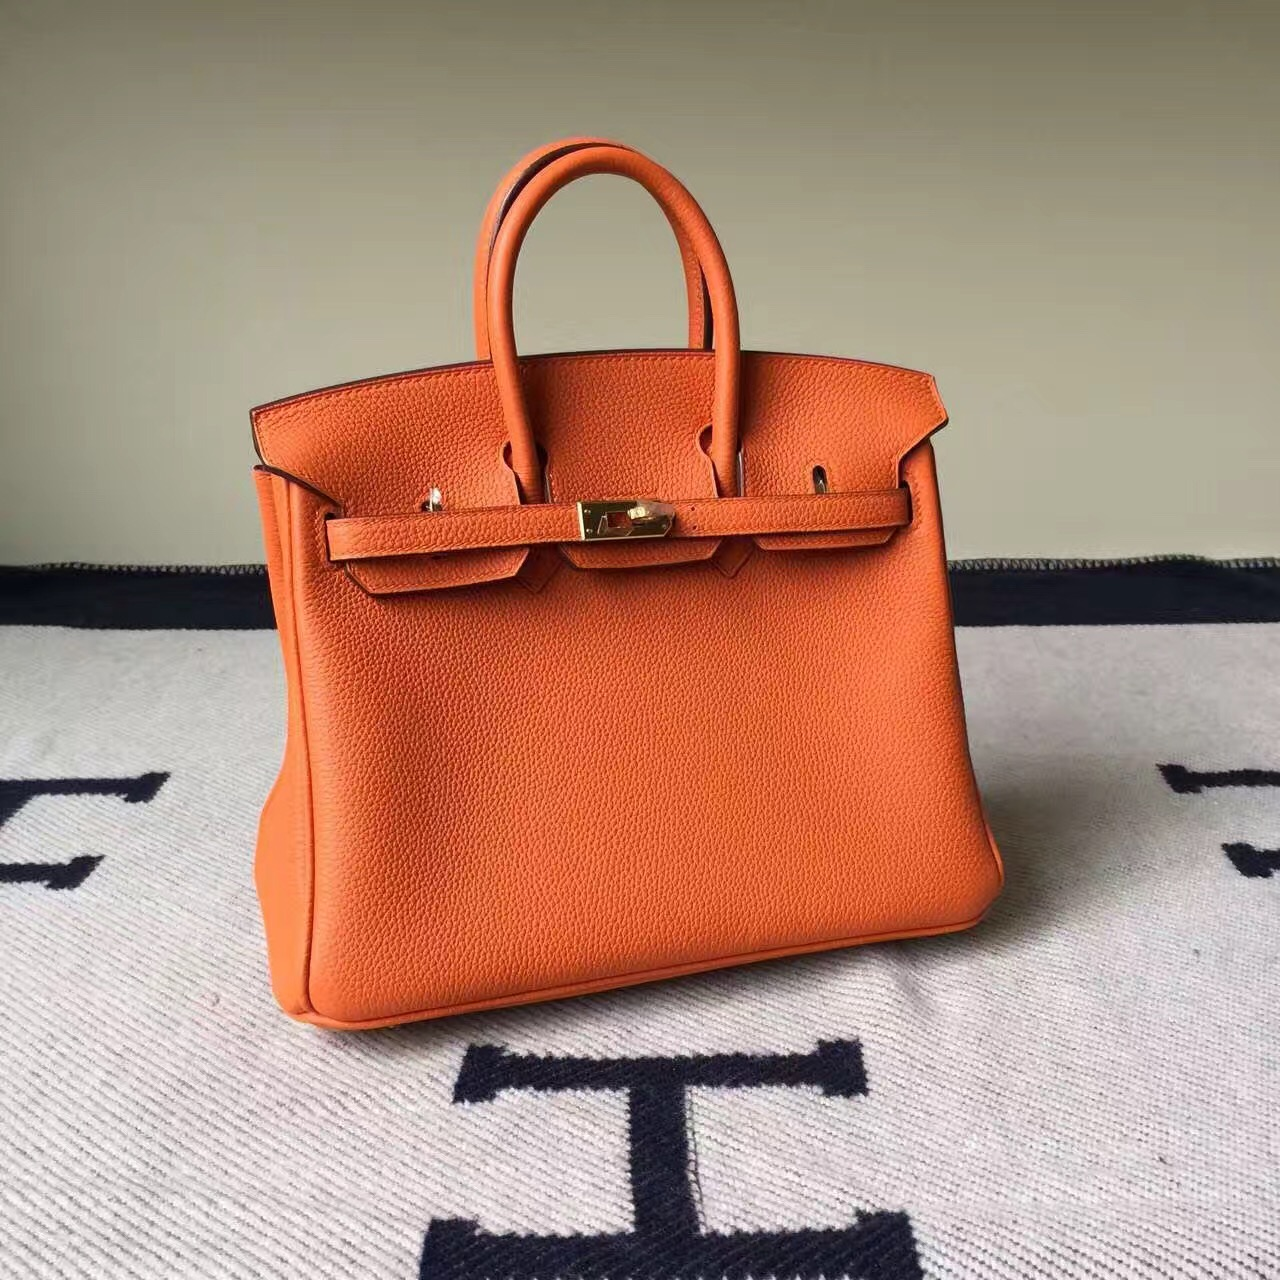 Hermes Website Togo Calfskin Leather Hermes Birkin25cm Bag in CK93 Orange